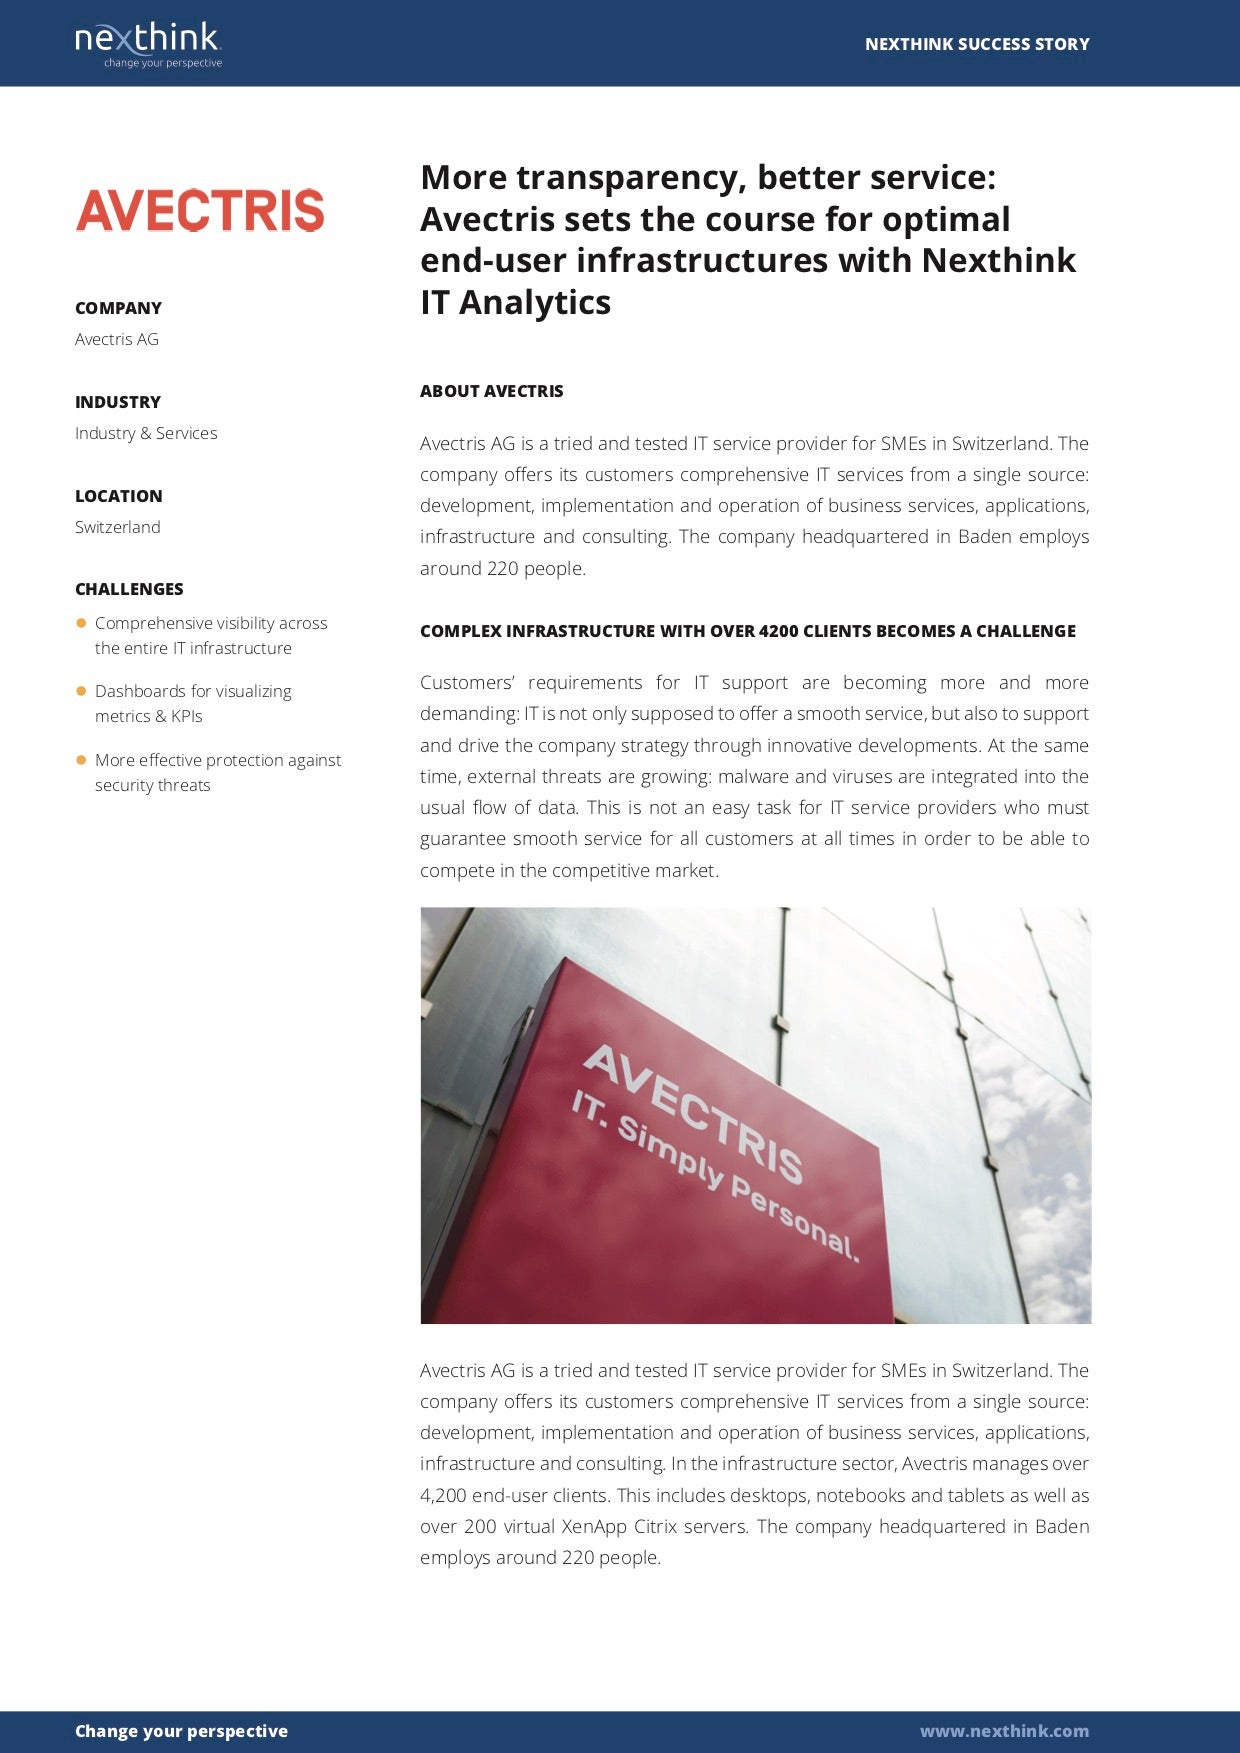 Avectris sets the course for optimal end-user infrastructures with Nexthink IT Analytics